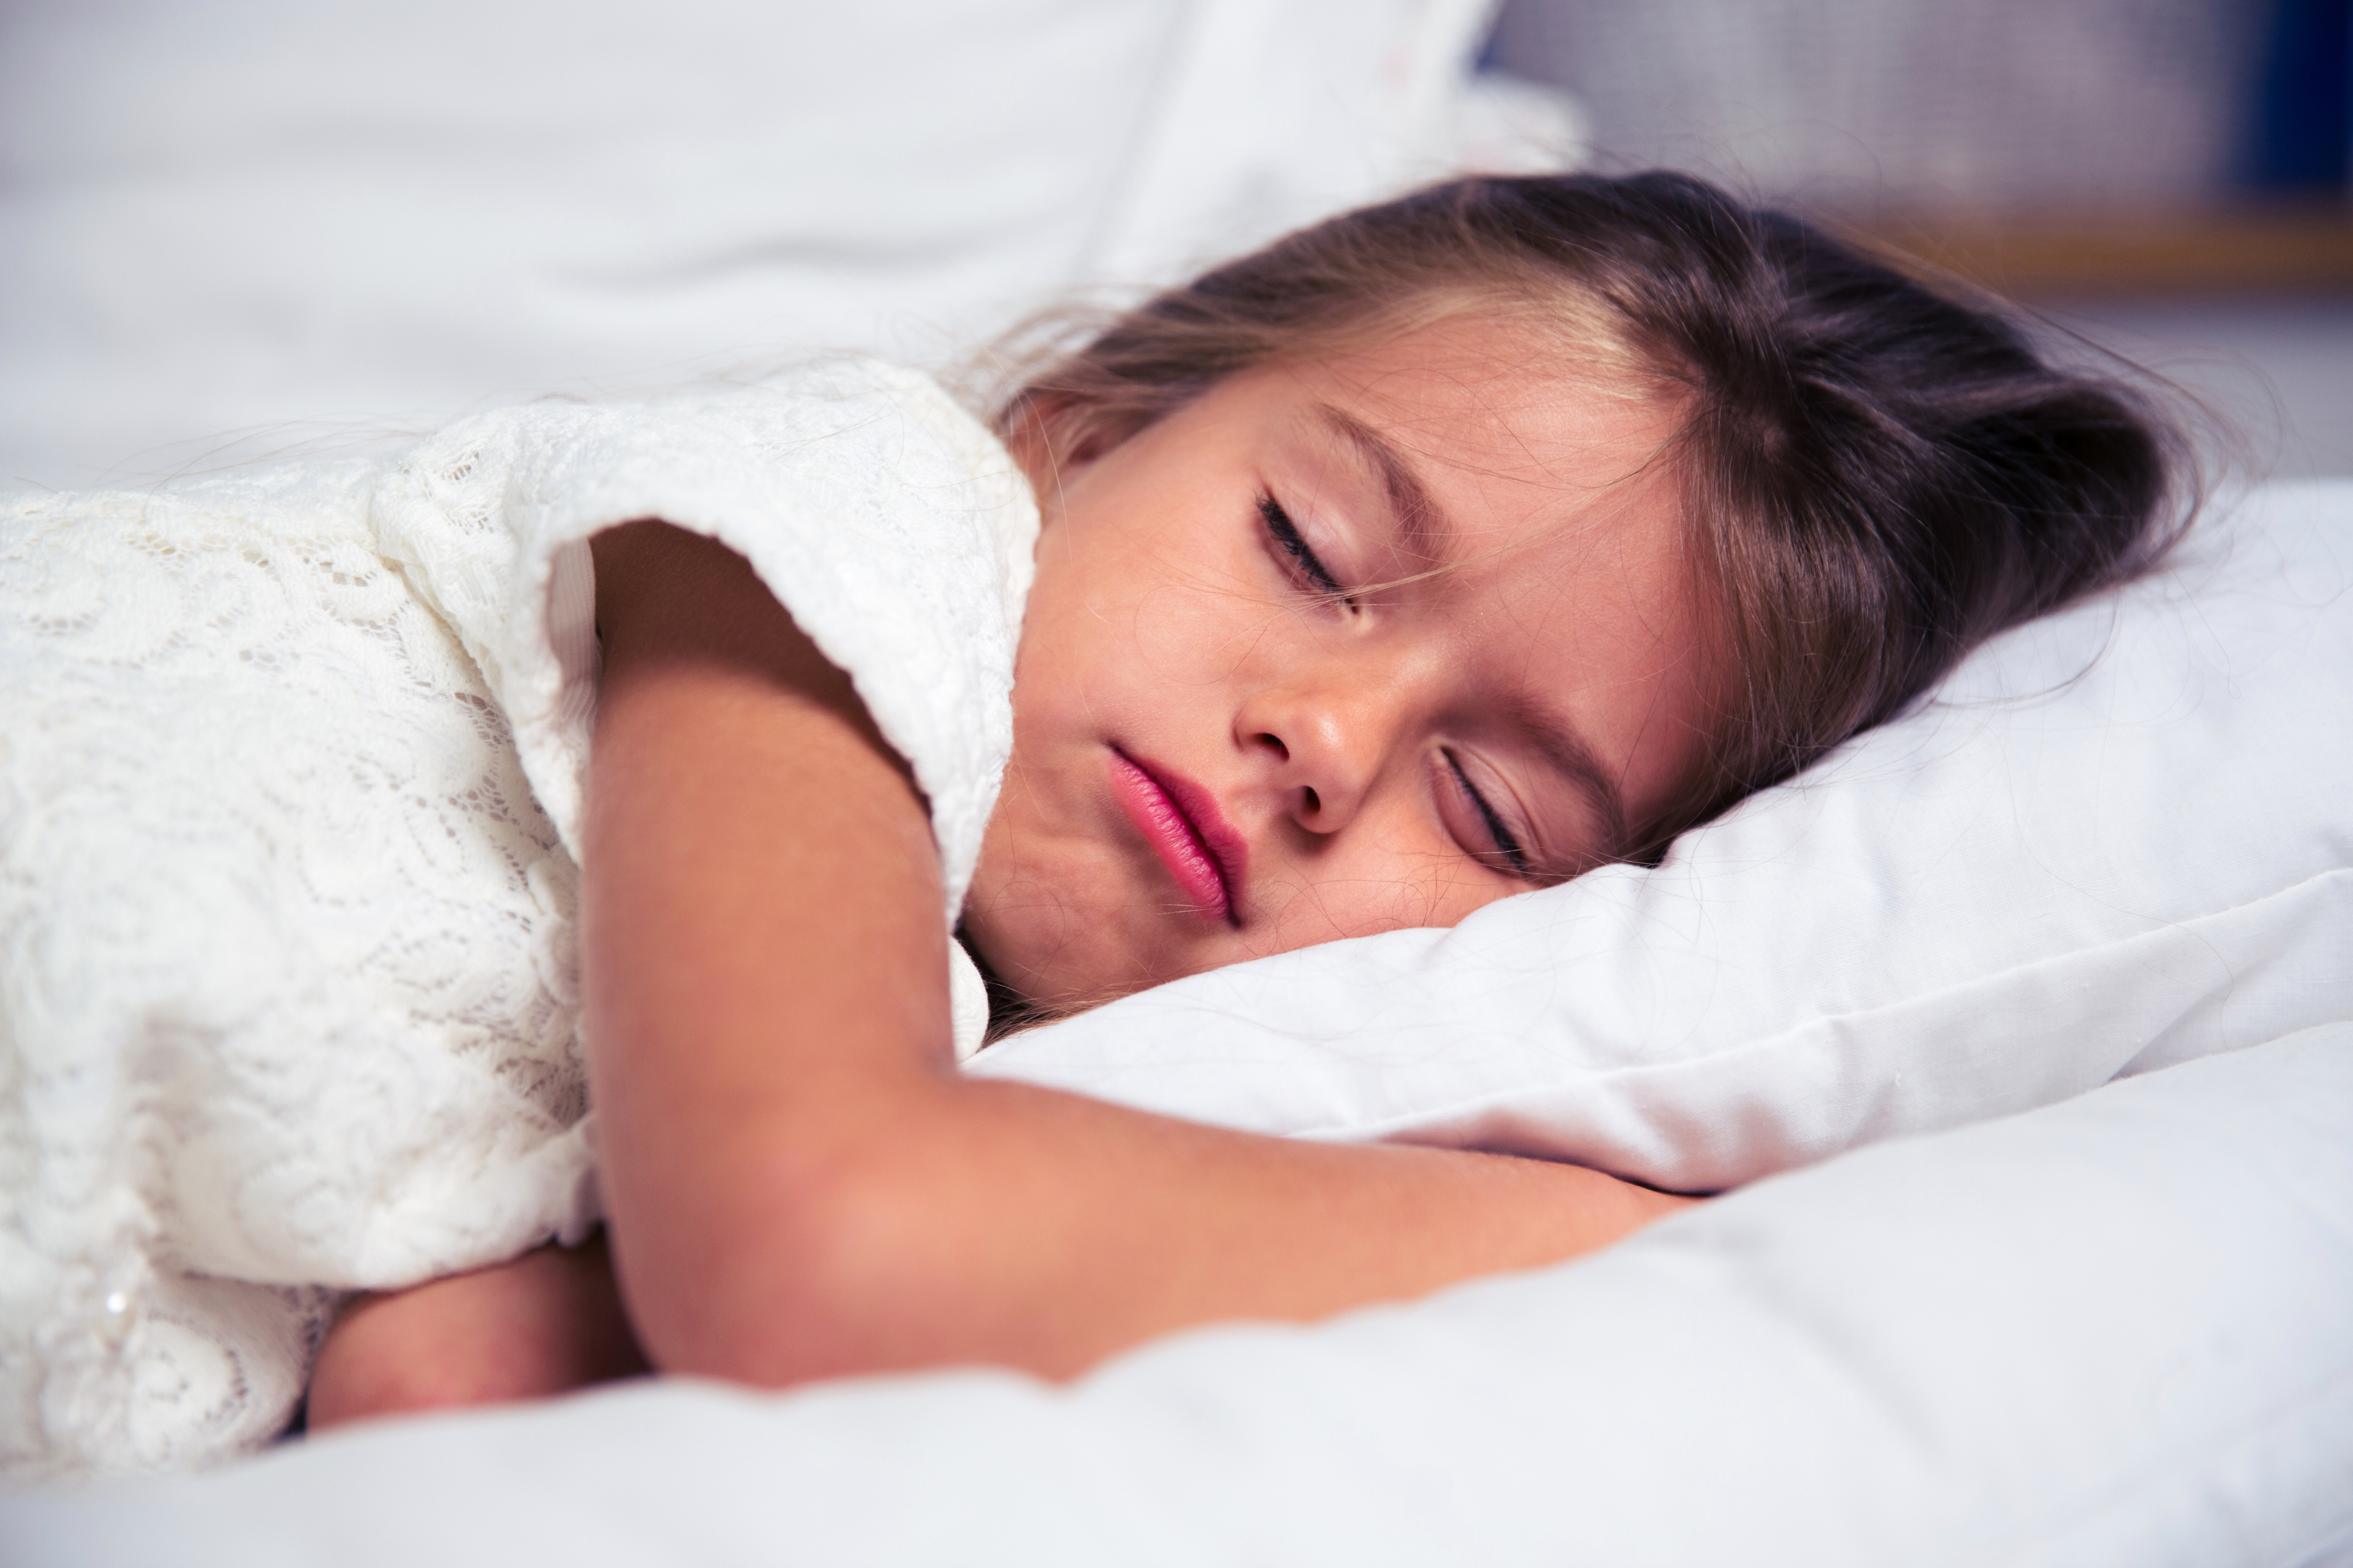 Sleep and your child wellnotes sarah bush lincoln for Sleeping bed